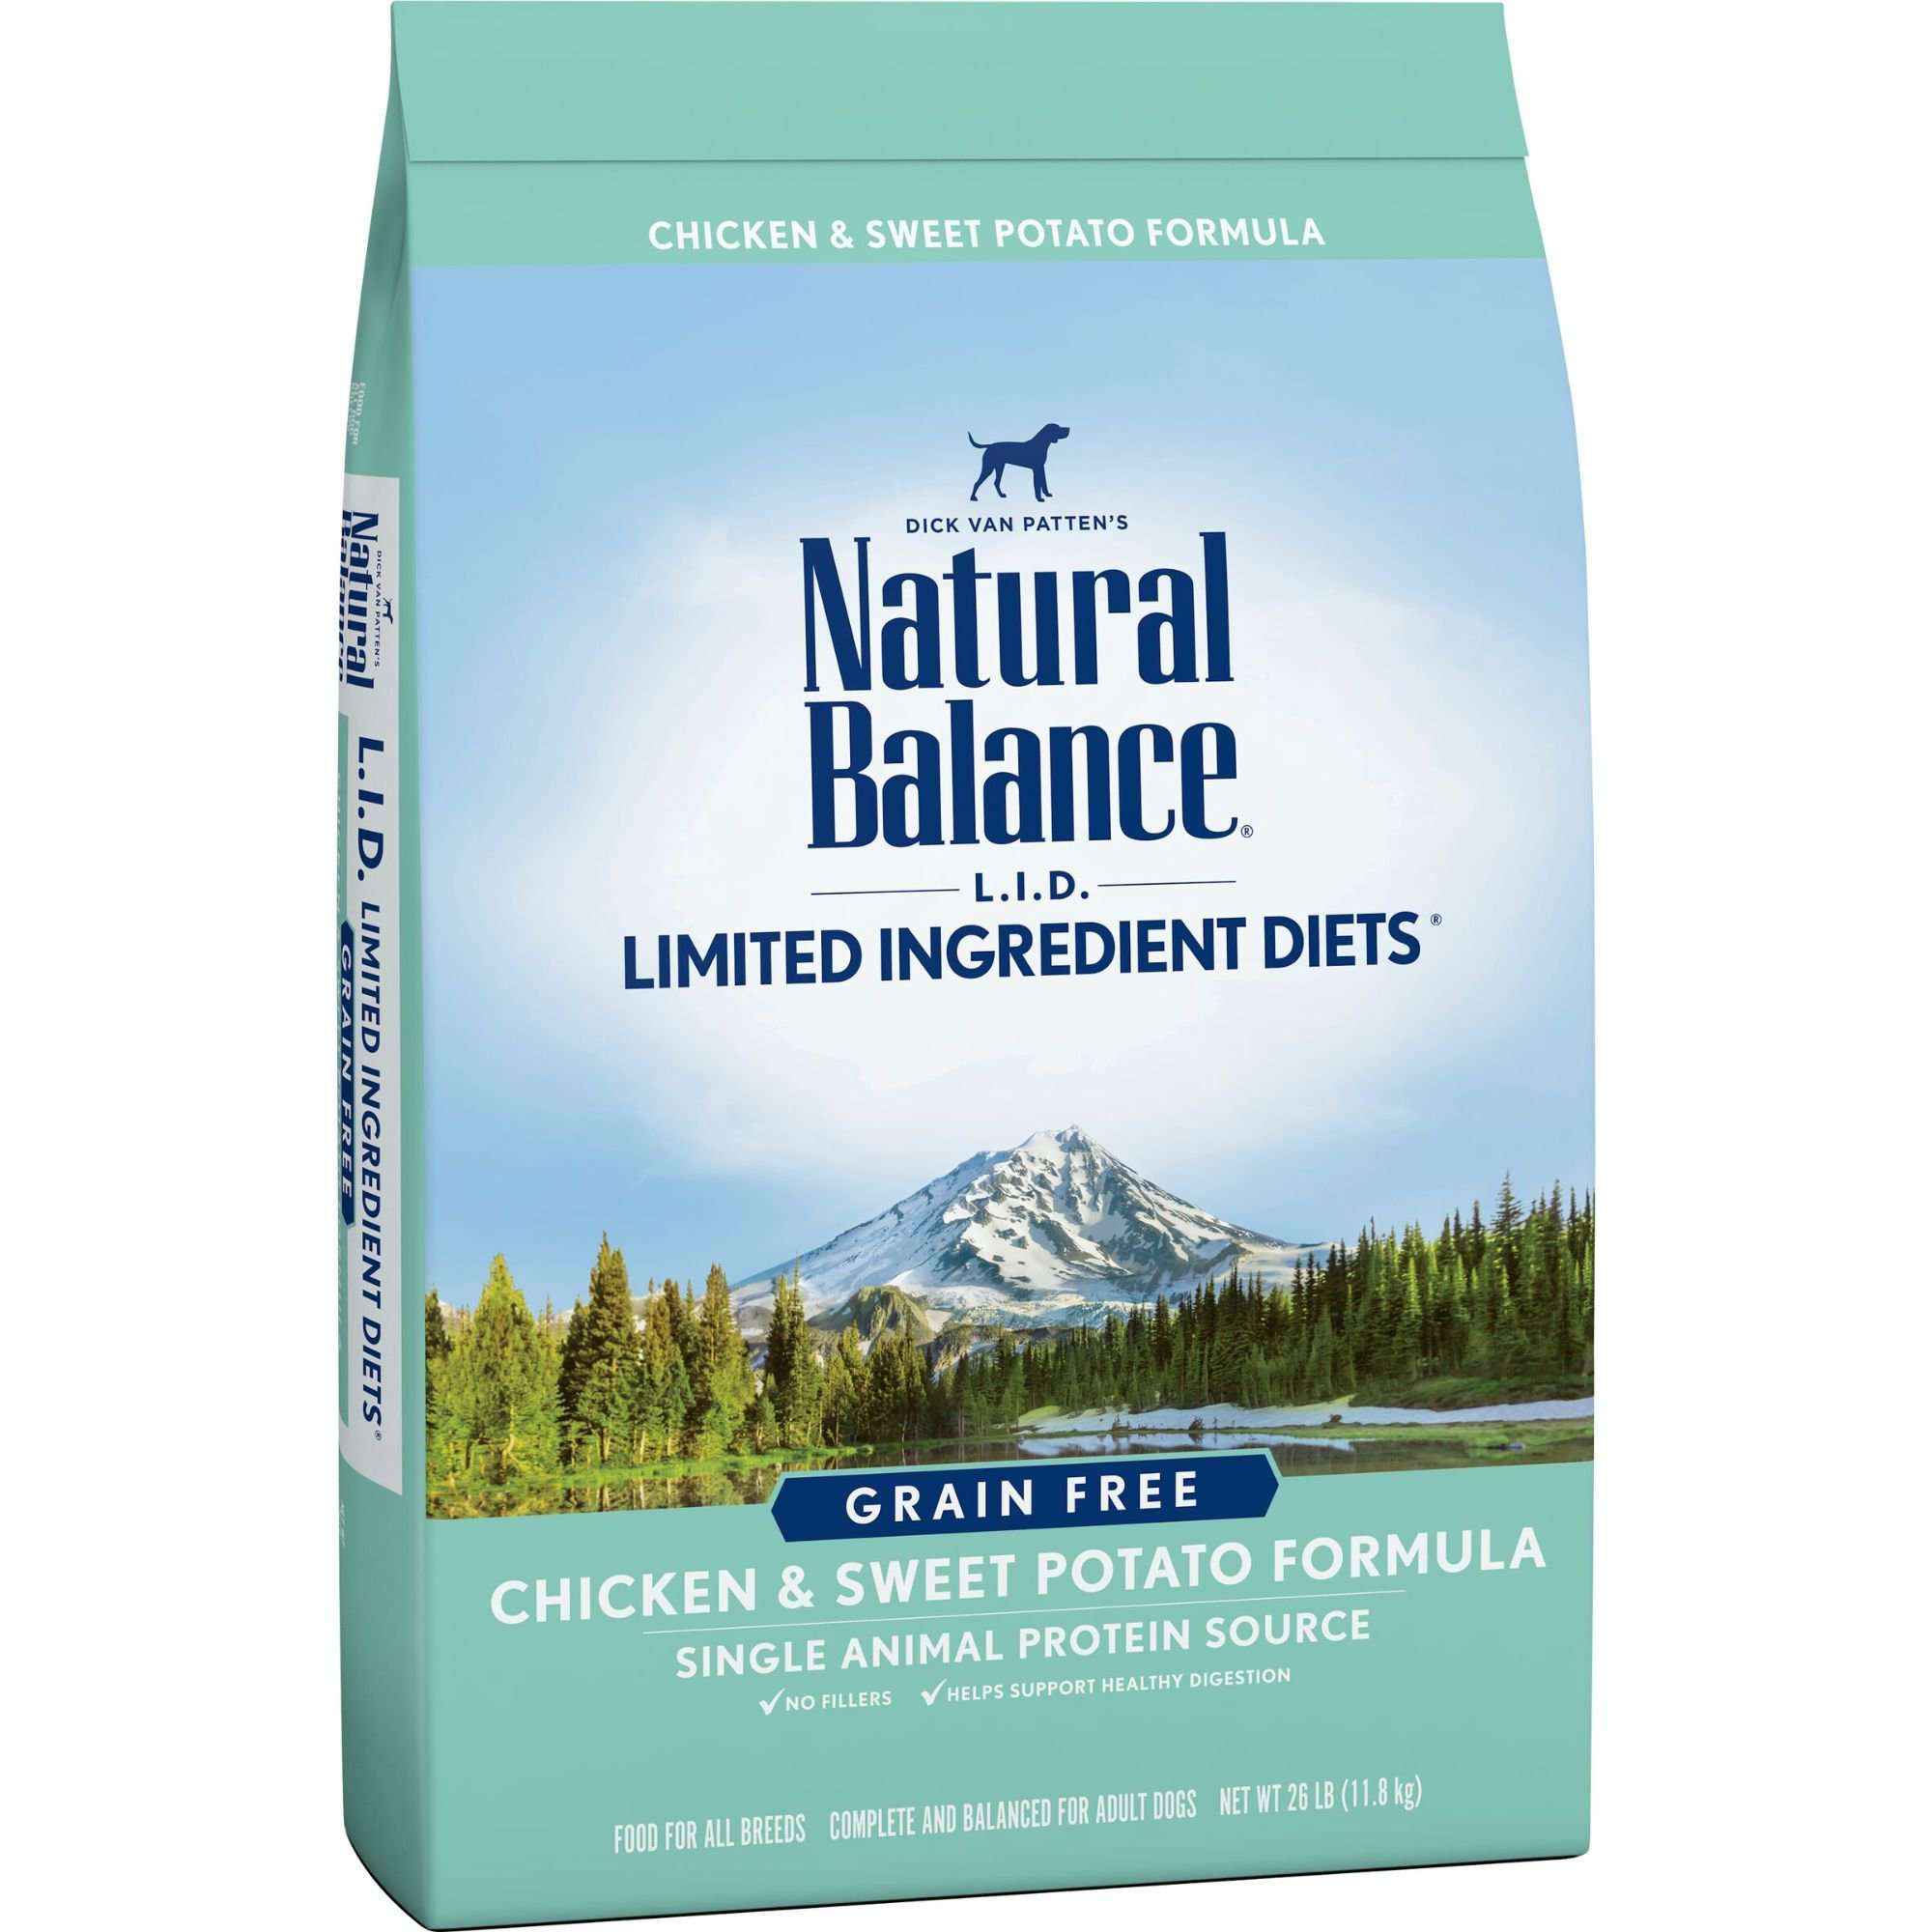 Natural Balance Dog Food Price Comparison